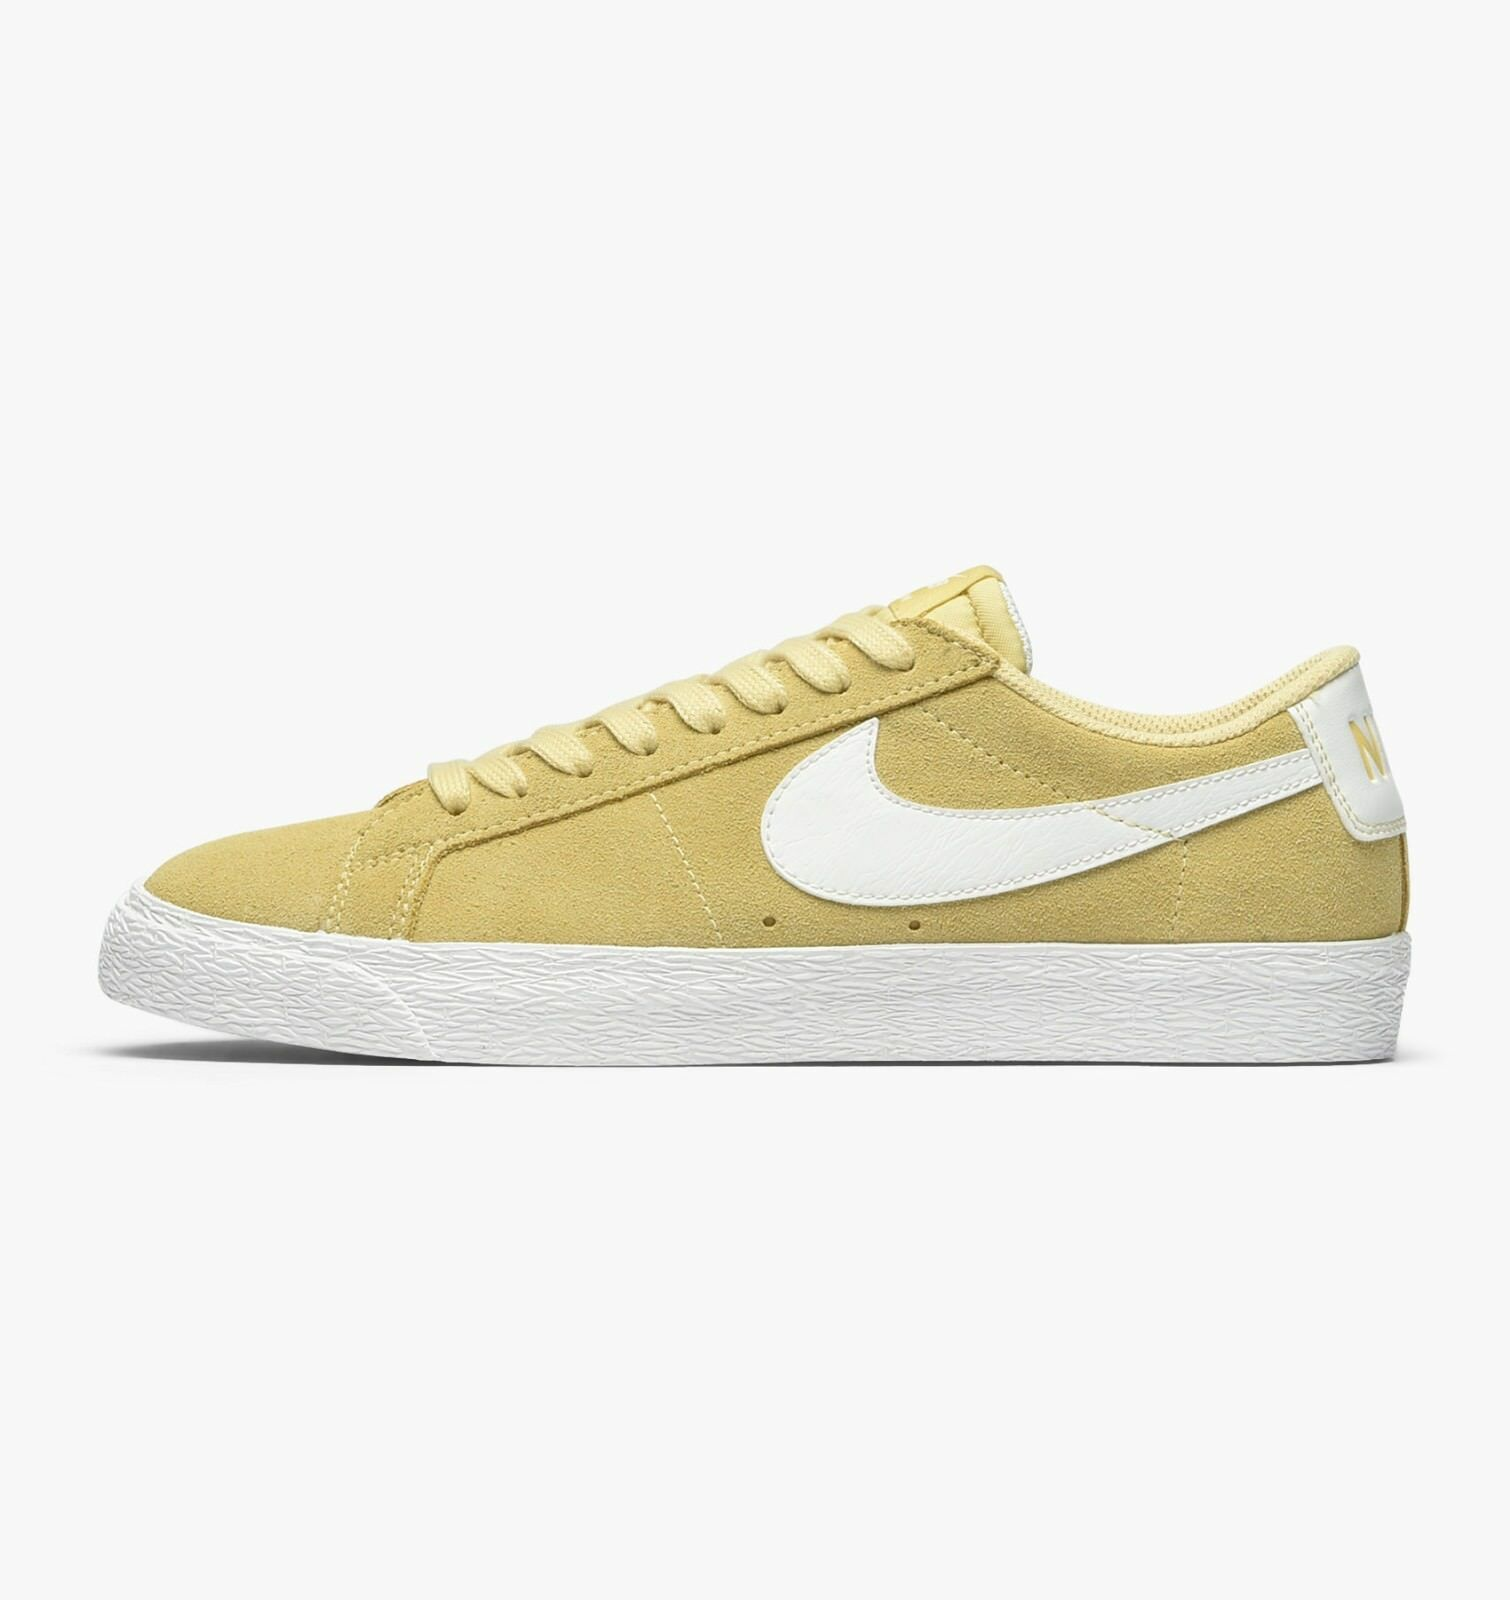 Nike SB - Blazer Low | Mens Skate Shoes - 864347-700 | Lemon Wash / White